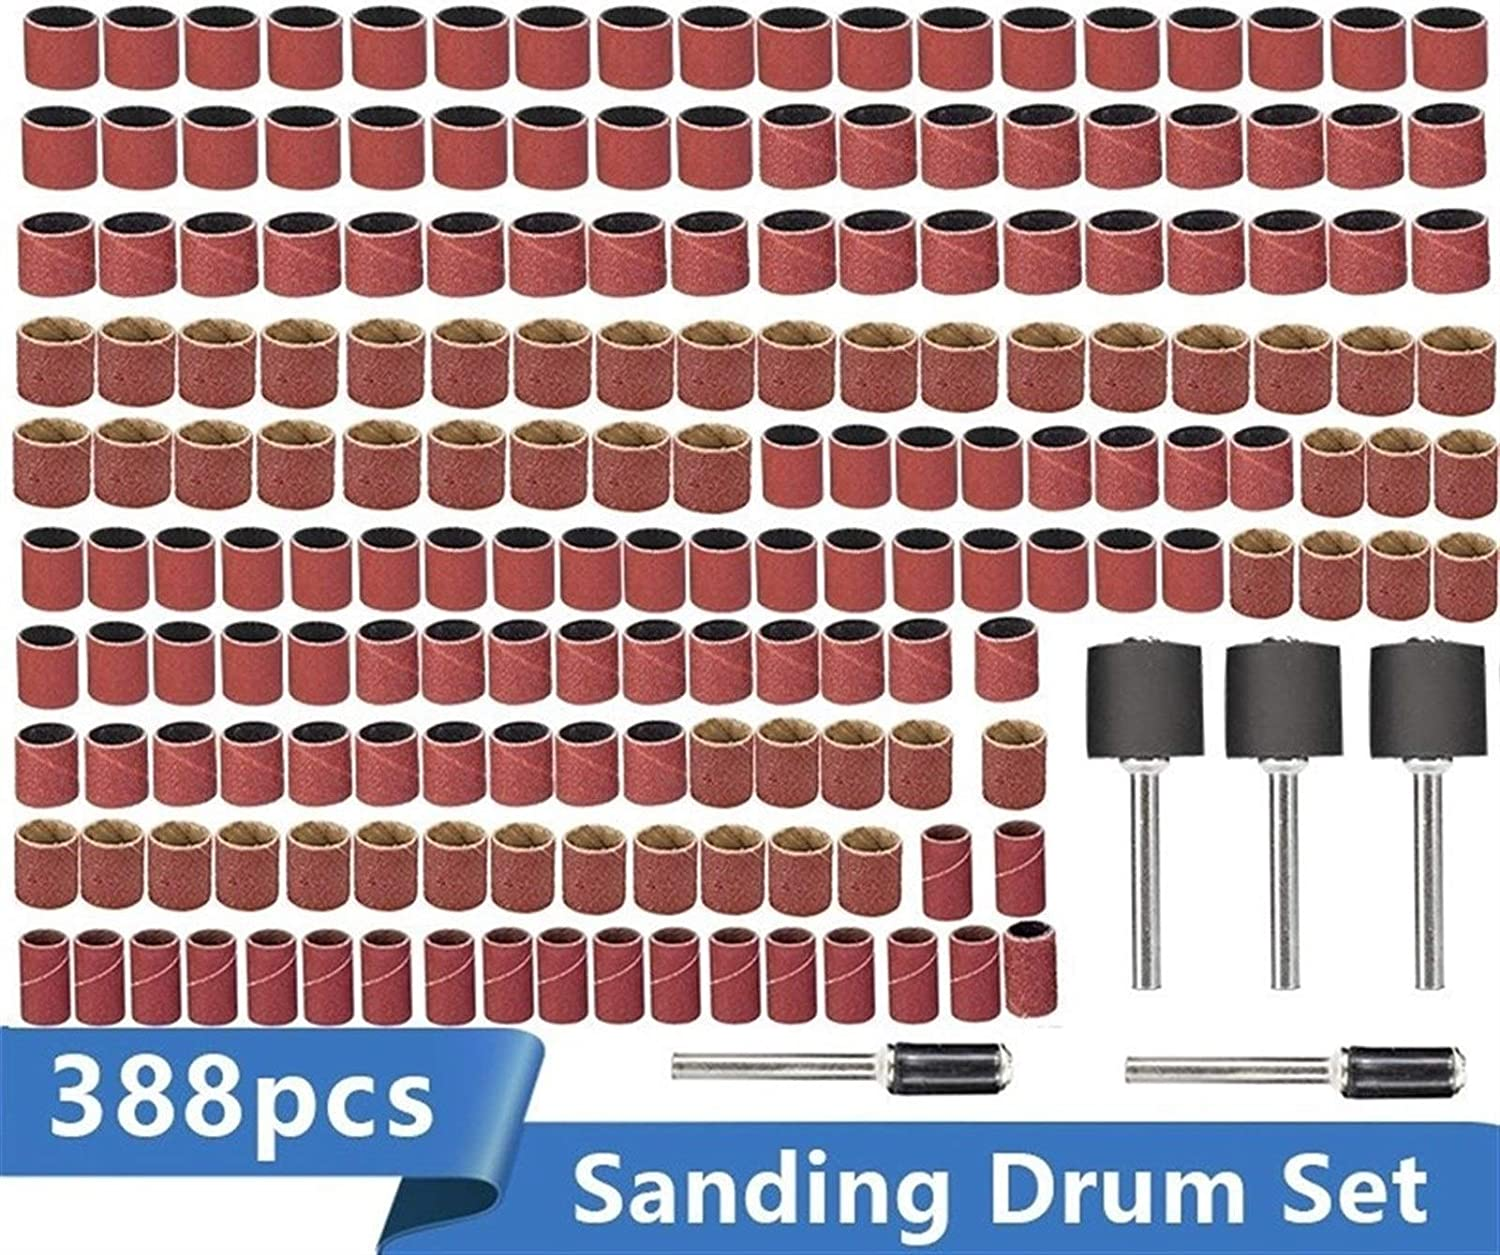 SHENYUAN Sanding Drum Kit 338pcs #60#120#320 Sanding Band with 3/8 1/4 1/2 Rubber Mandrel for Dremel Electric Mill Rotary Tools (Color : 388pcs Set with Box) 388pcs Set